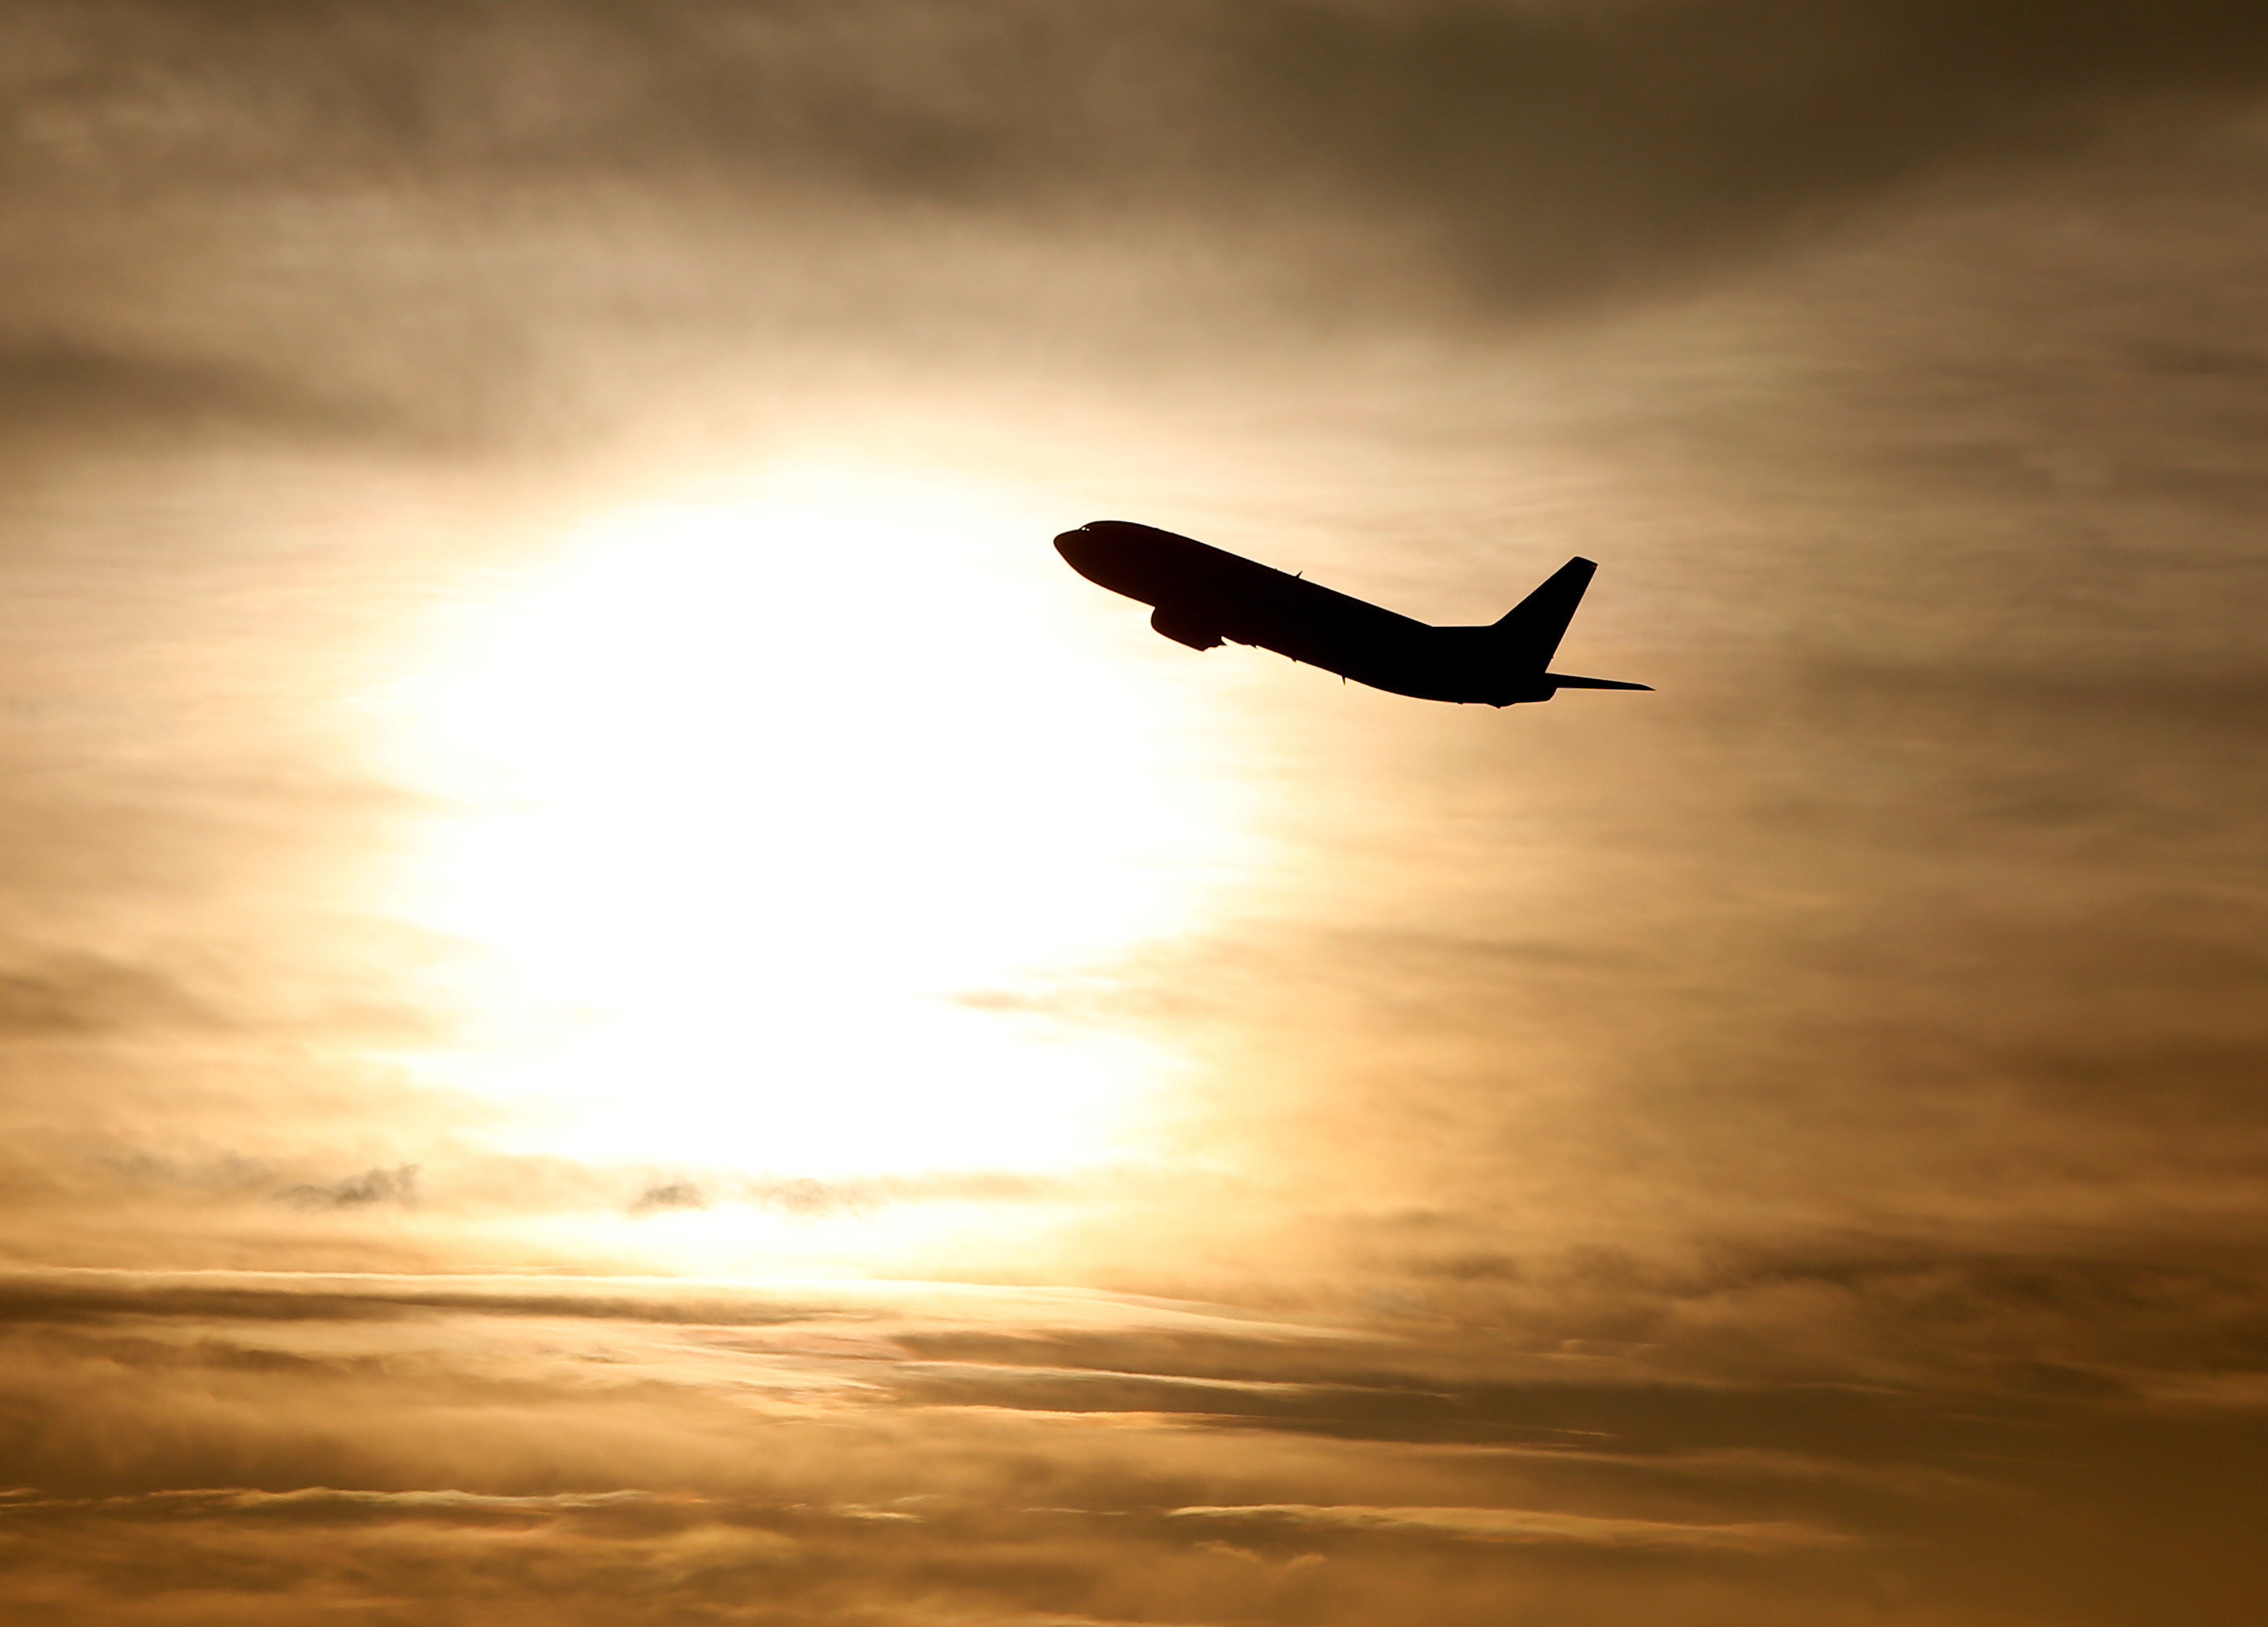 Airline emissions could rocket 700% by 2050 – so how do we reverse the  trend when passenger numbers are climbing? | World Economic Forum